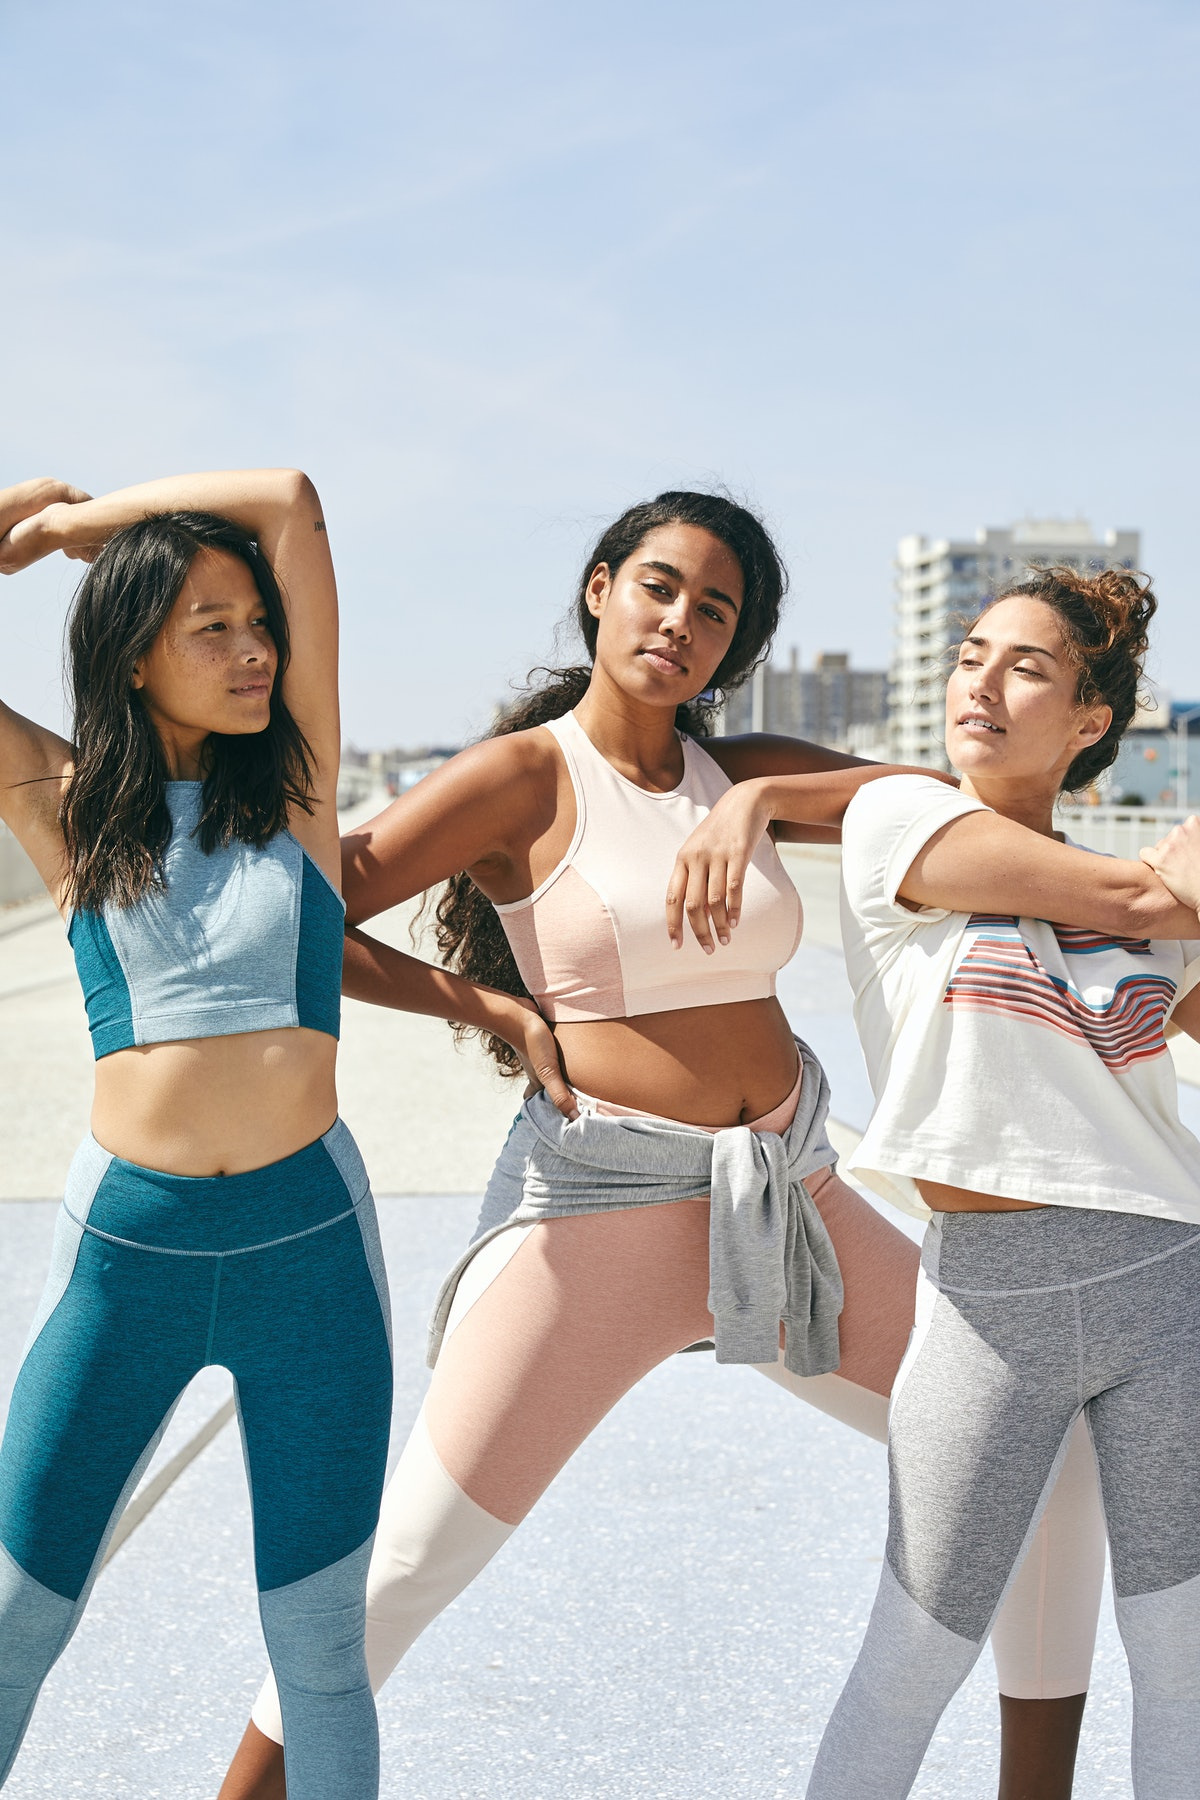 The Madewell x Outdoor Voices Collection Is Cool, Comfortable Clothing In A Kit